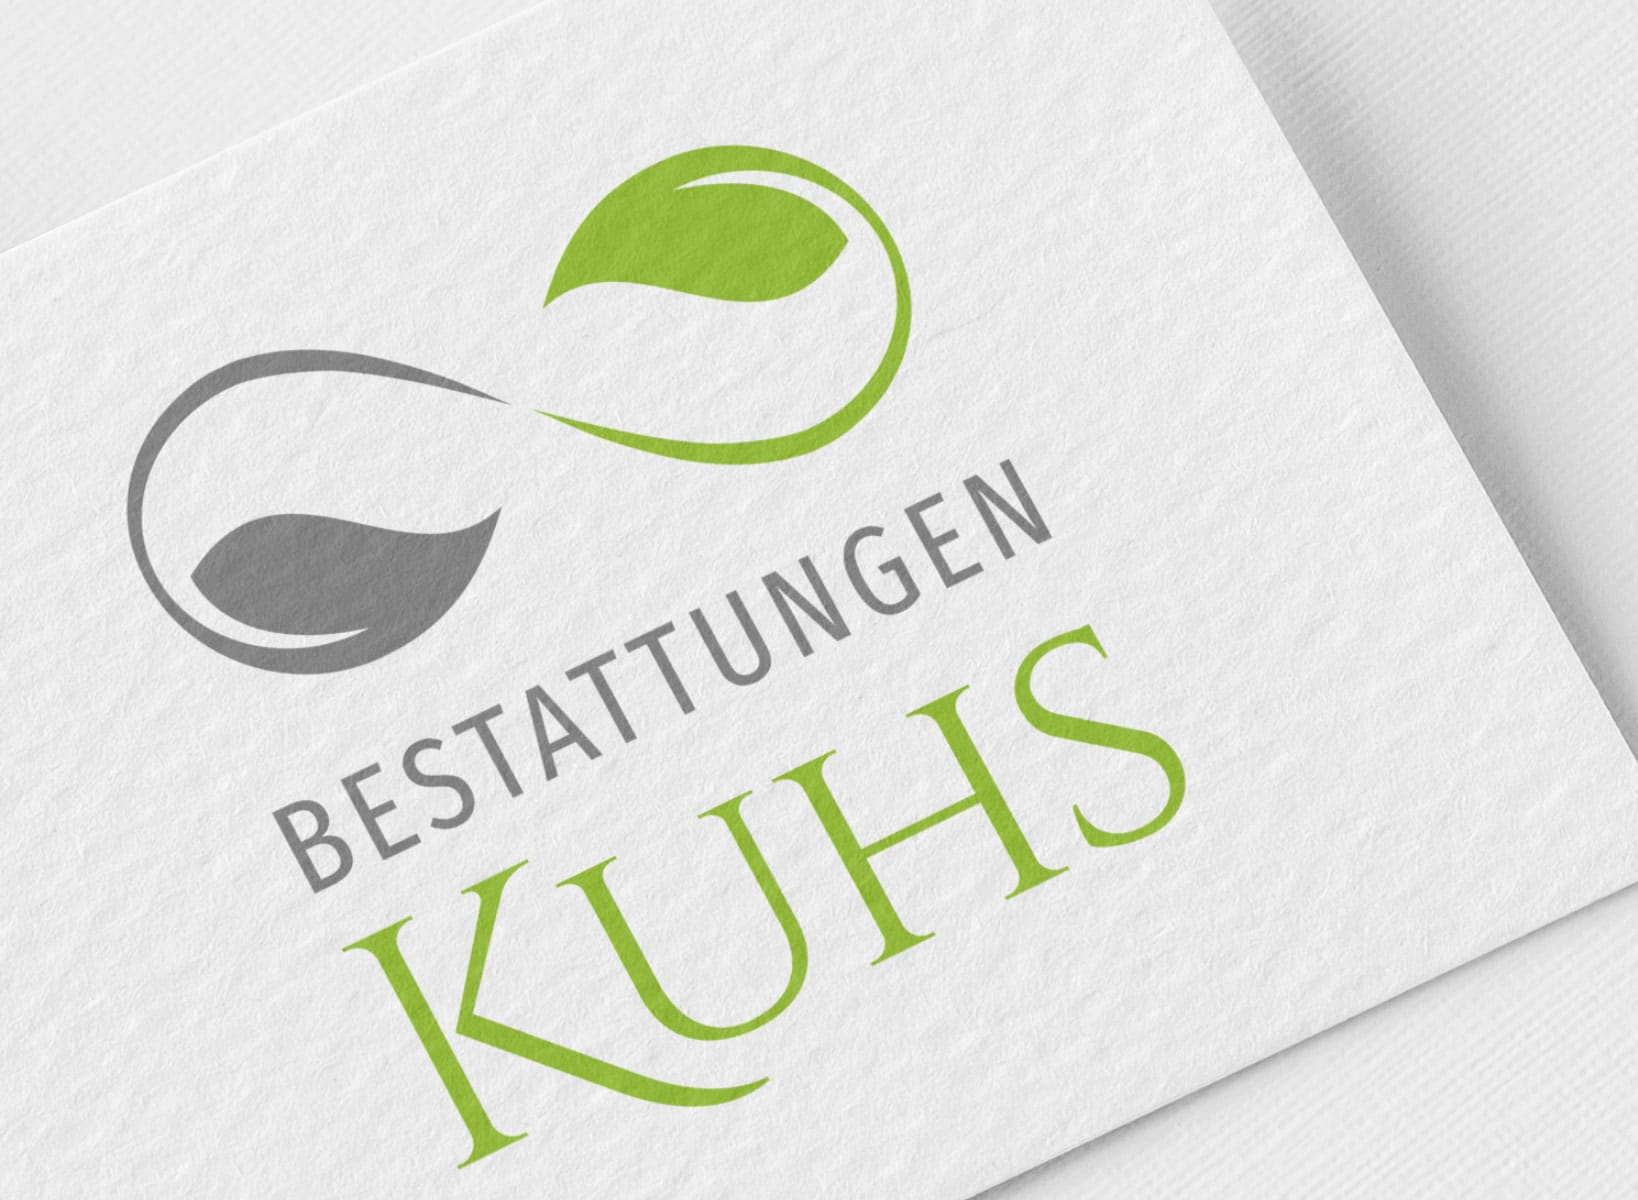 vh-crossmedia | Logodesign und Illustrationen